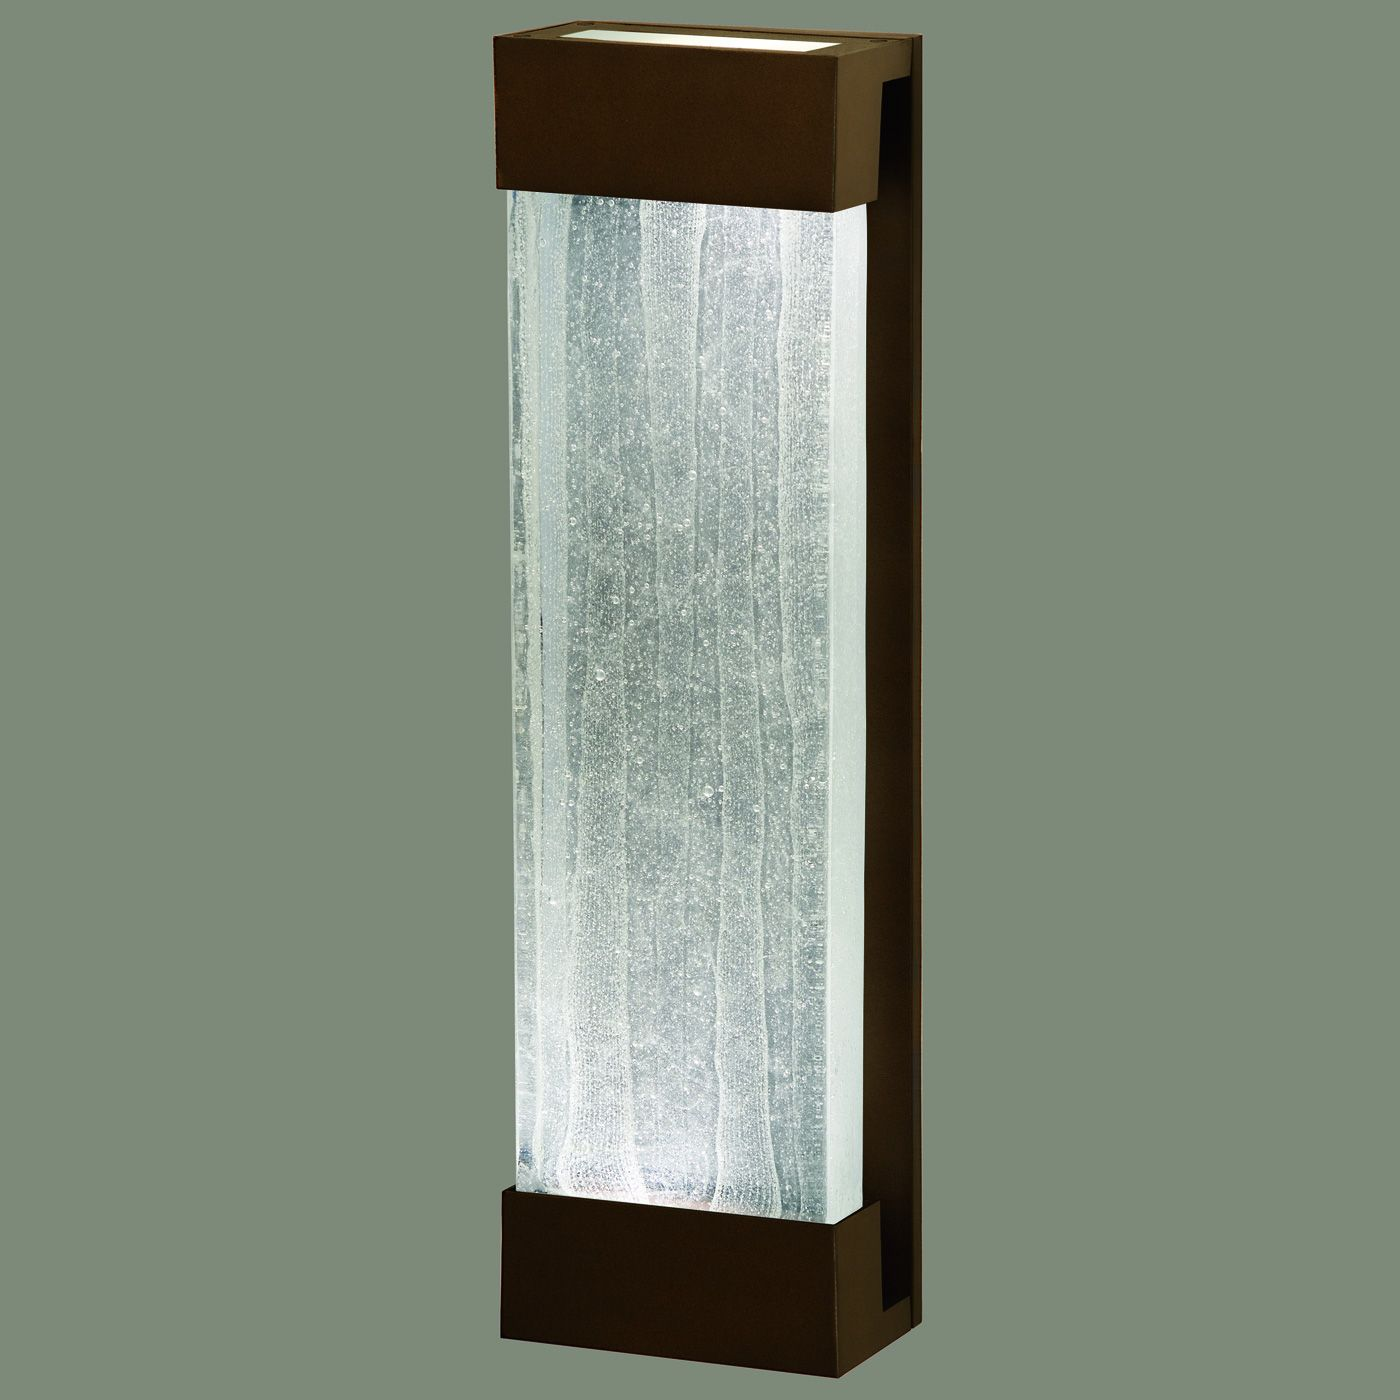 Crystal Bakehouse Indoor Outdoor Wall Sconce By Fine Art Handcrafted Lighting 811050 13 Sconces Wall Sconces Candle Wall Sconces